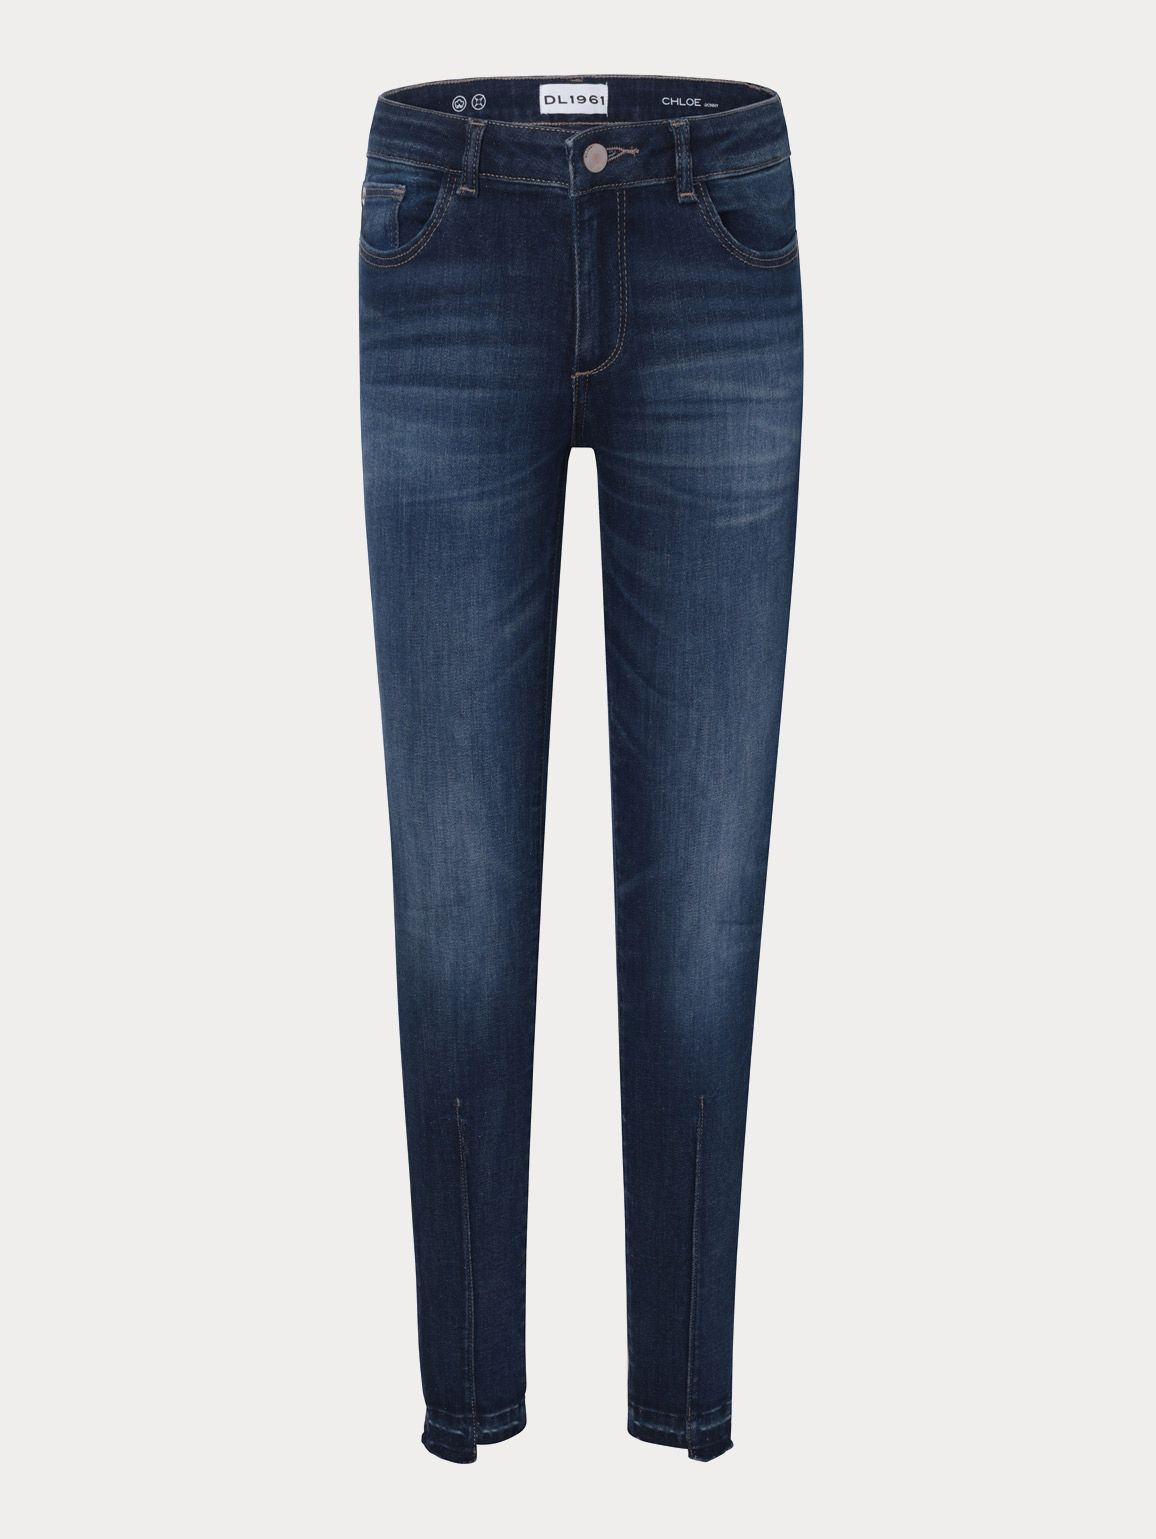 Girls - Chloe Skinny | Limelight - DL1961